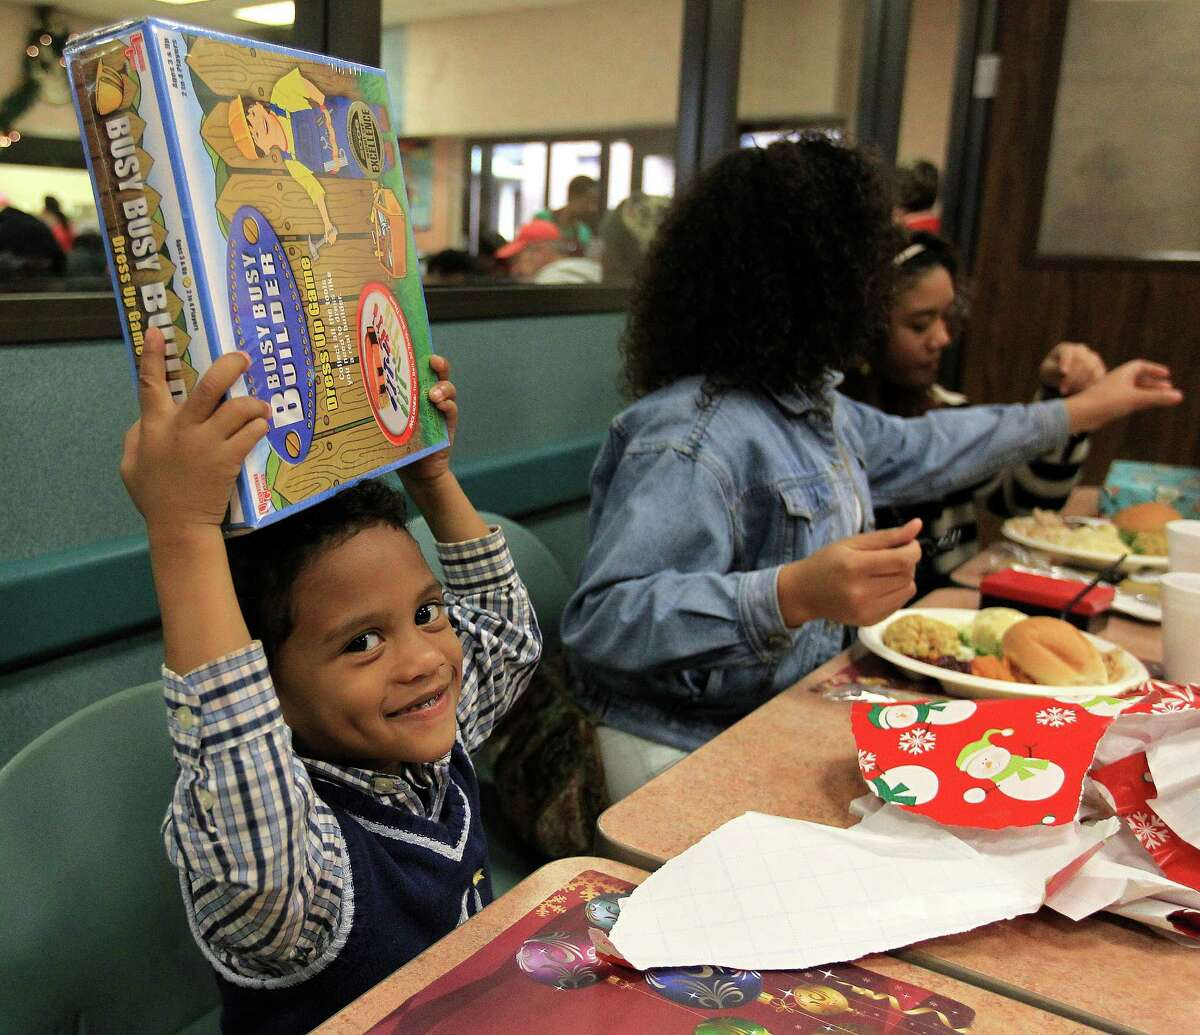 Each year, the Salvation Army Greater Houston Area Command serves Christmas Day meals to hundreds of men, women and children.